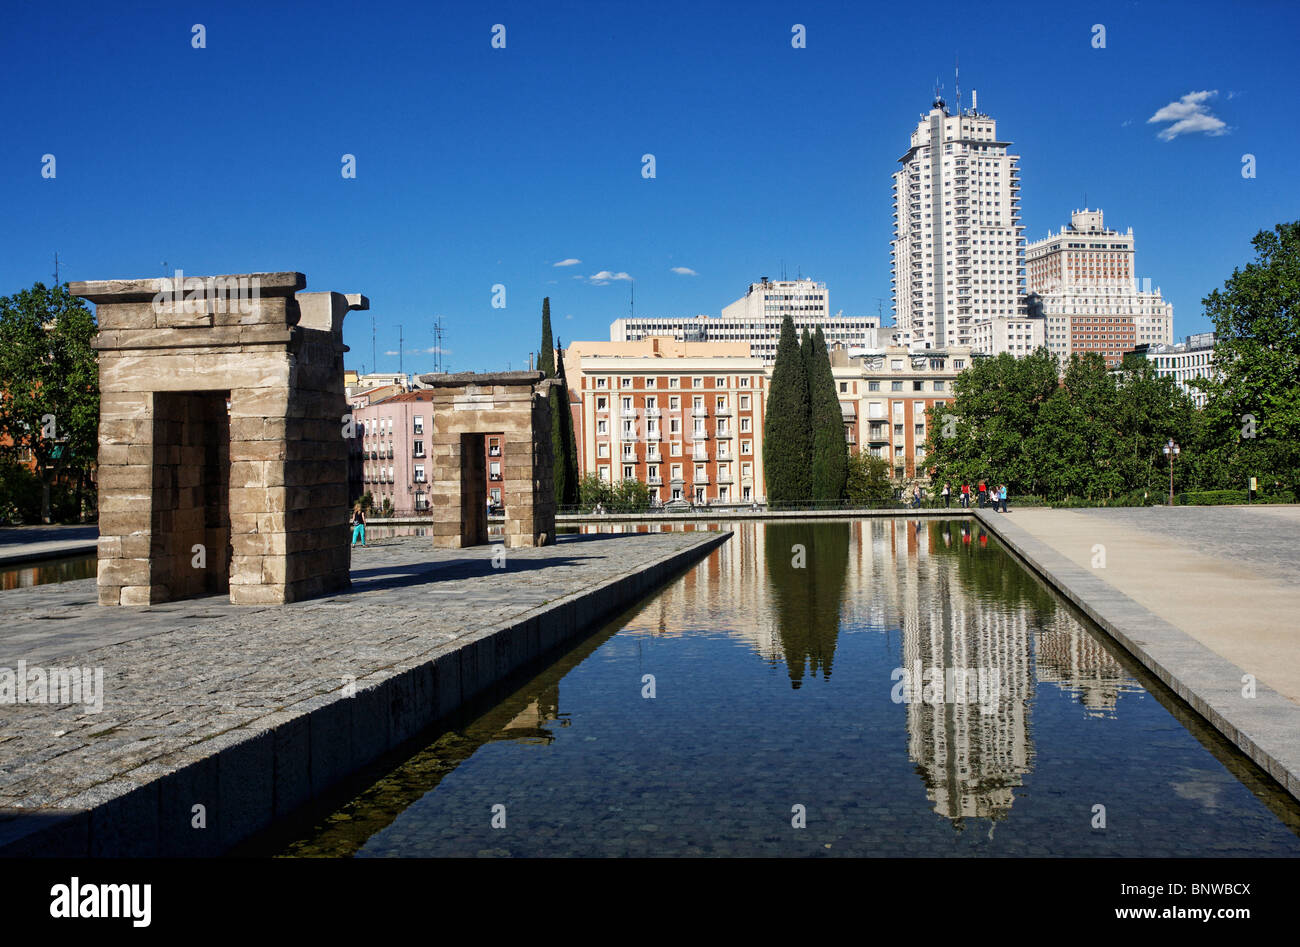 Temple of Debod, Parque del Oeste and Plaza de España, Madrid, Spain Stock Photo